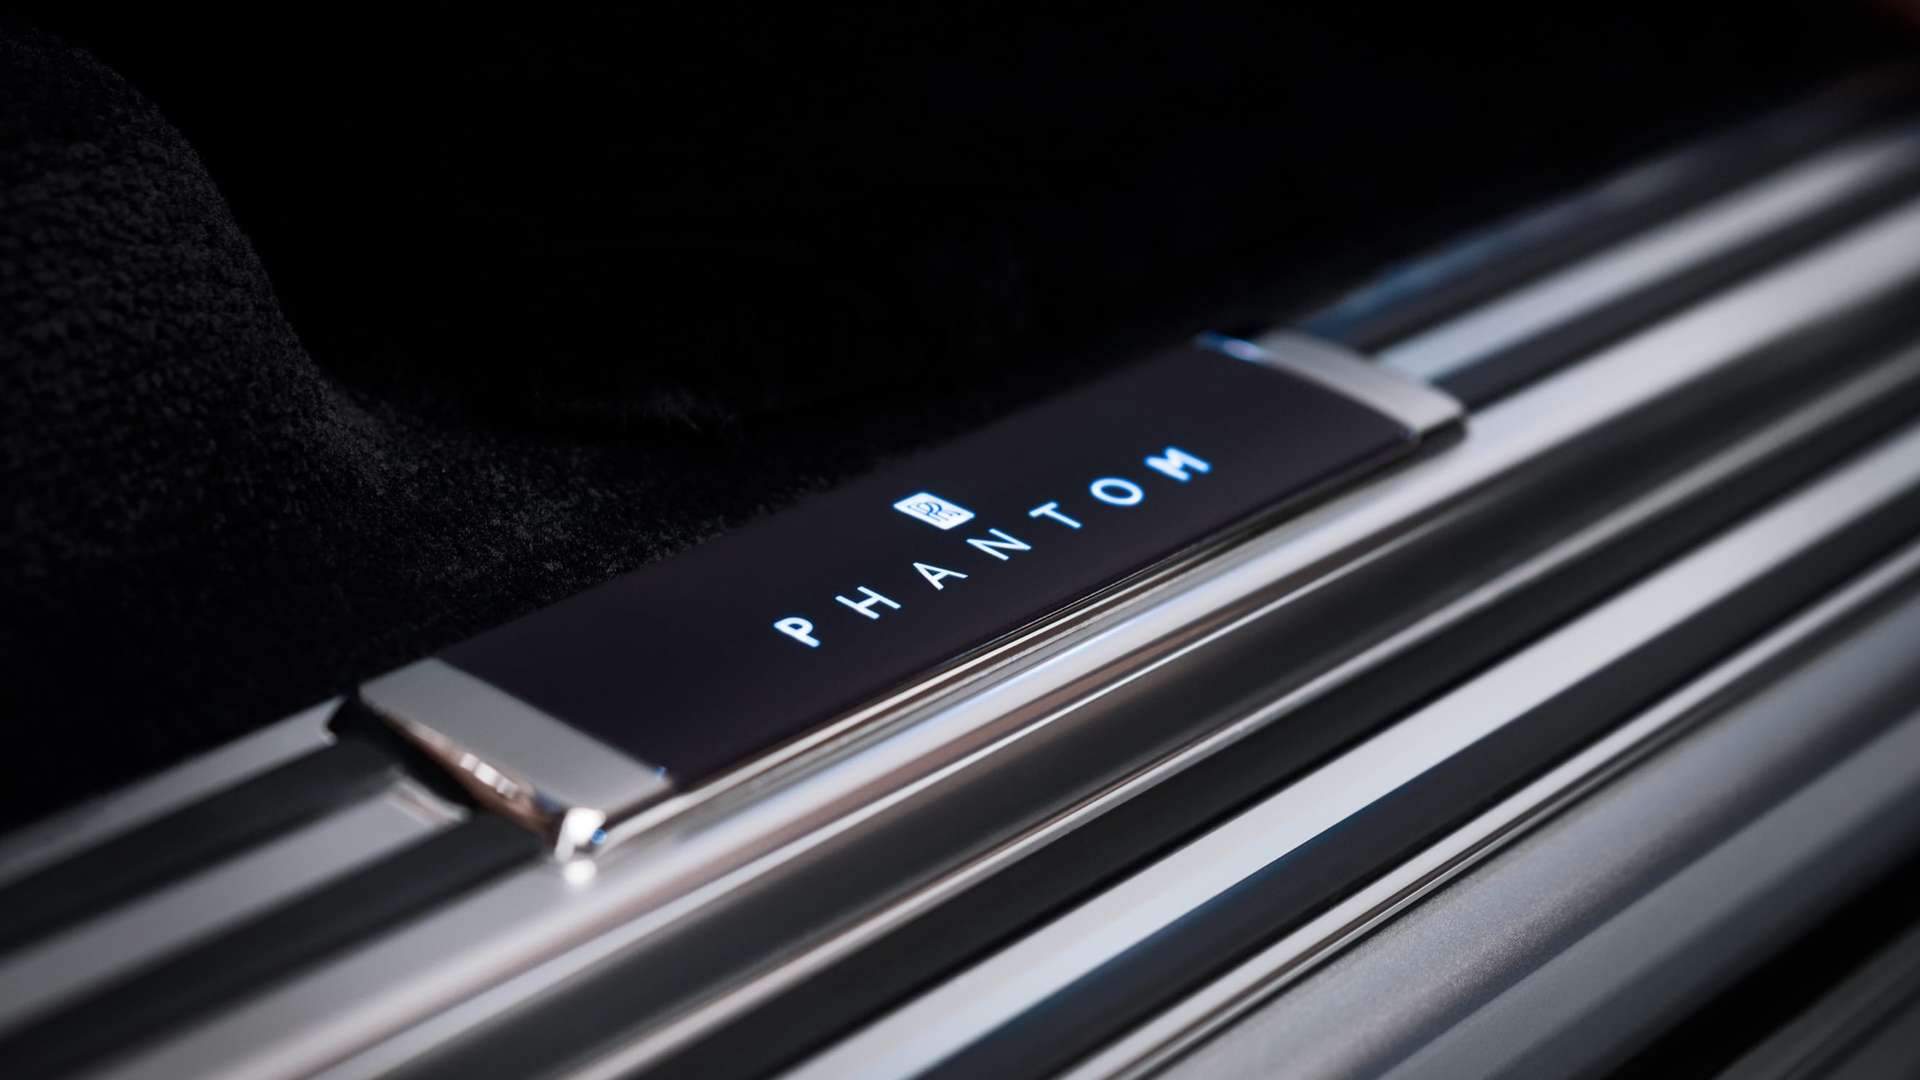 A close up of an illuminated tread plate on a Rolls-Royce Phantom Motor Car